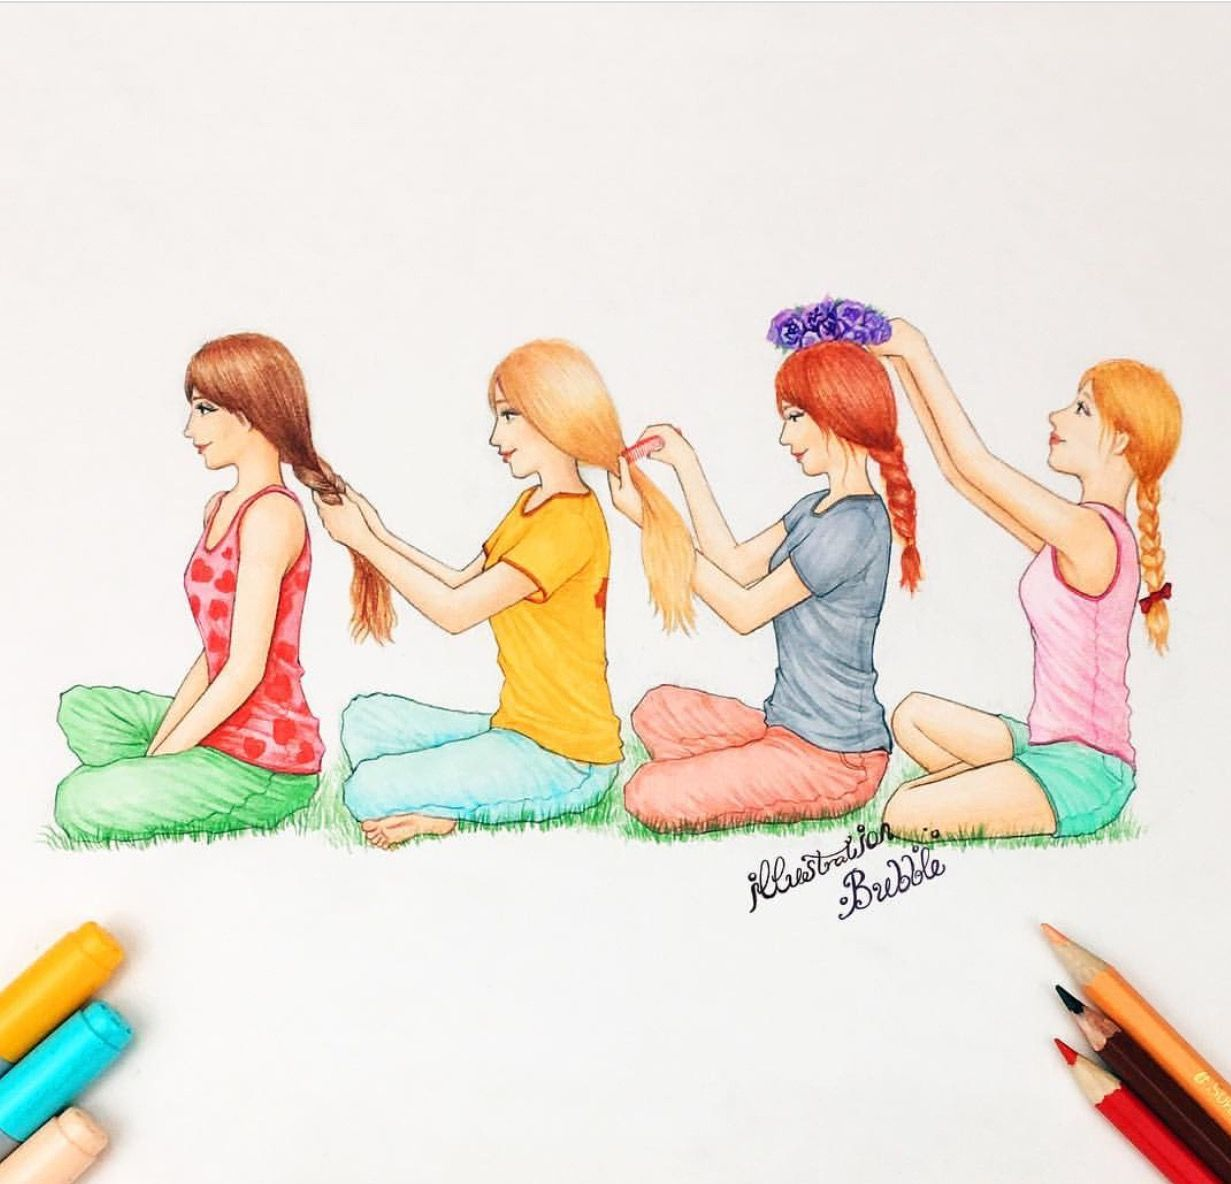 Comb hairs | Best Friends Forever | Pinterest | Bff ...